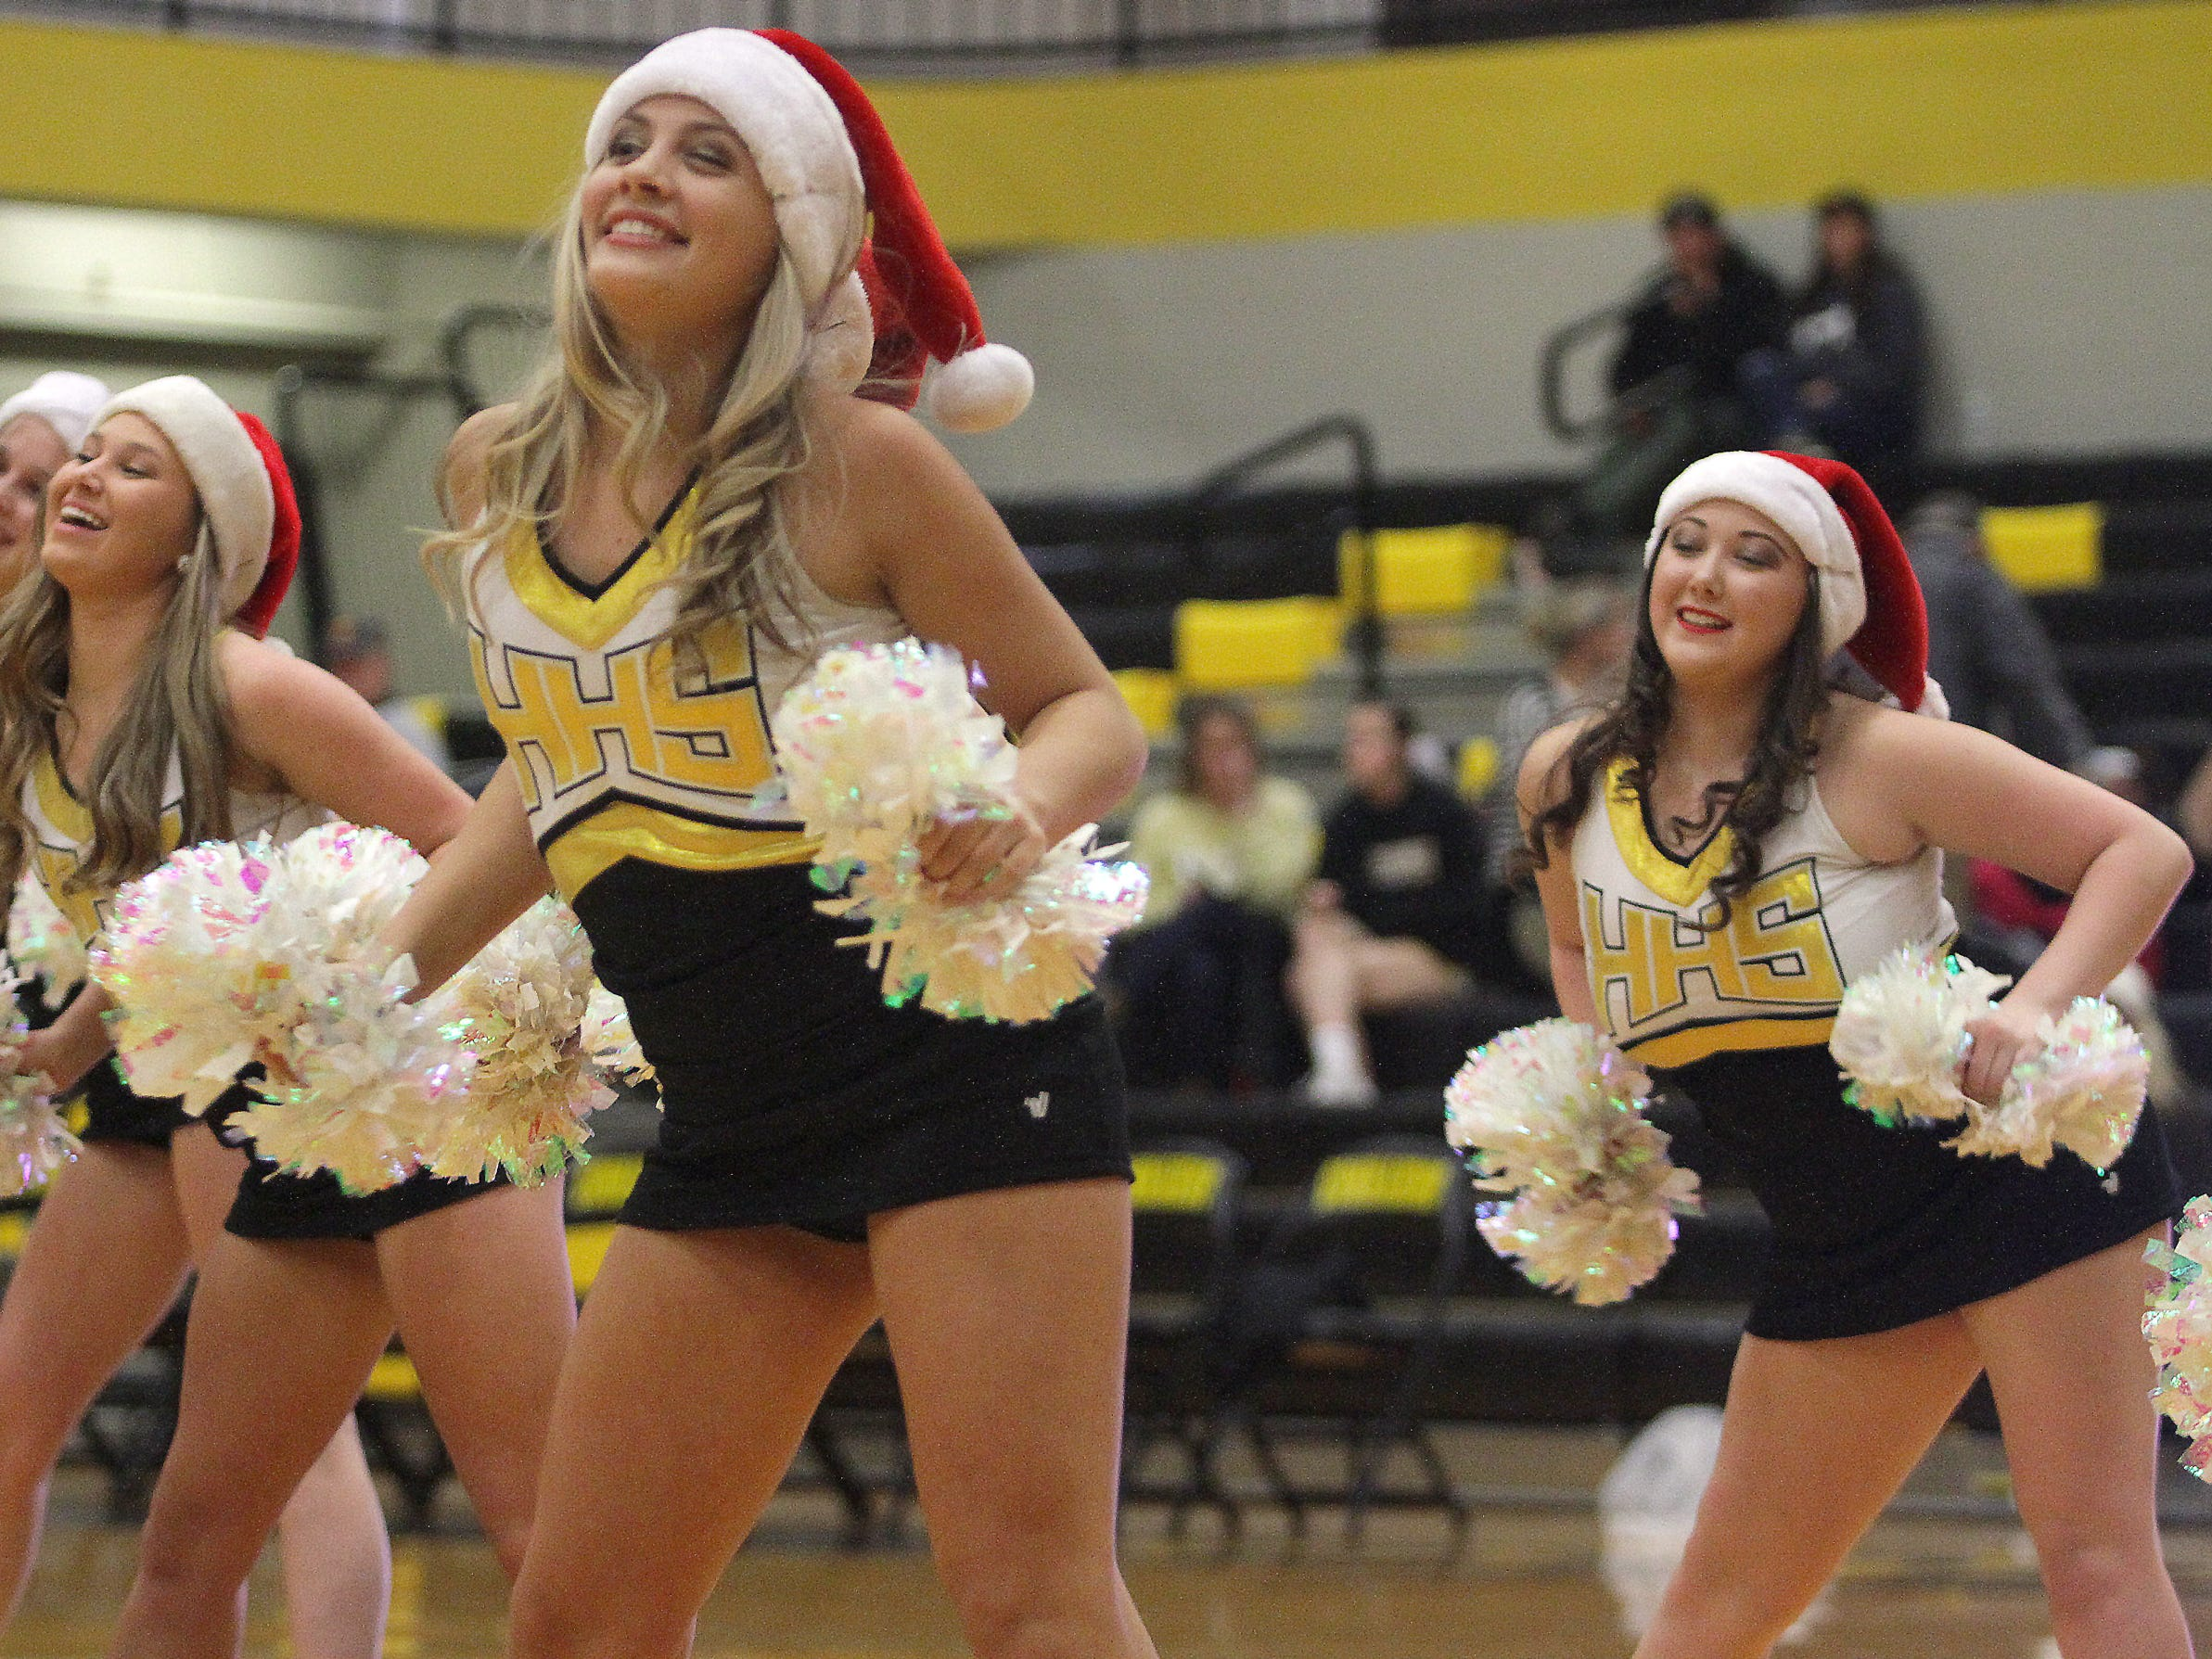 The Hendersonville High  Golden Girls Dance team performs at halftime at the game bewtween Lebanon and Hendersonville on Tuesday, December 11, 2018.